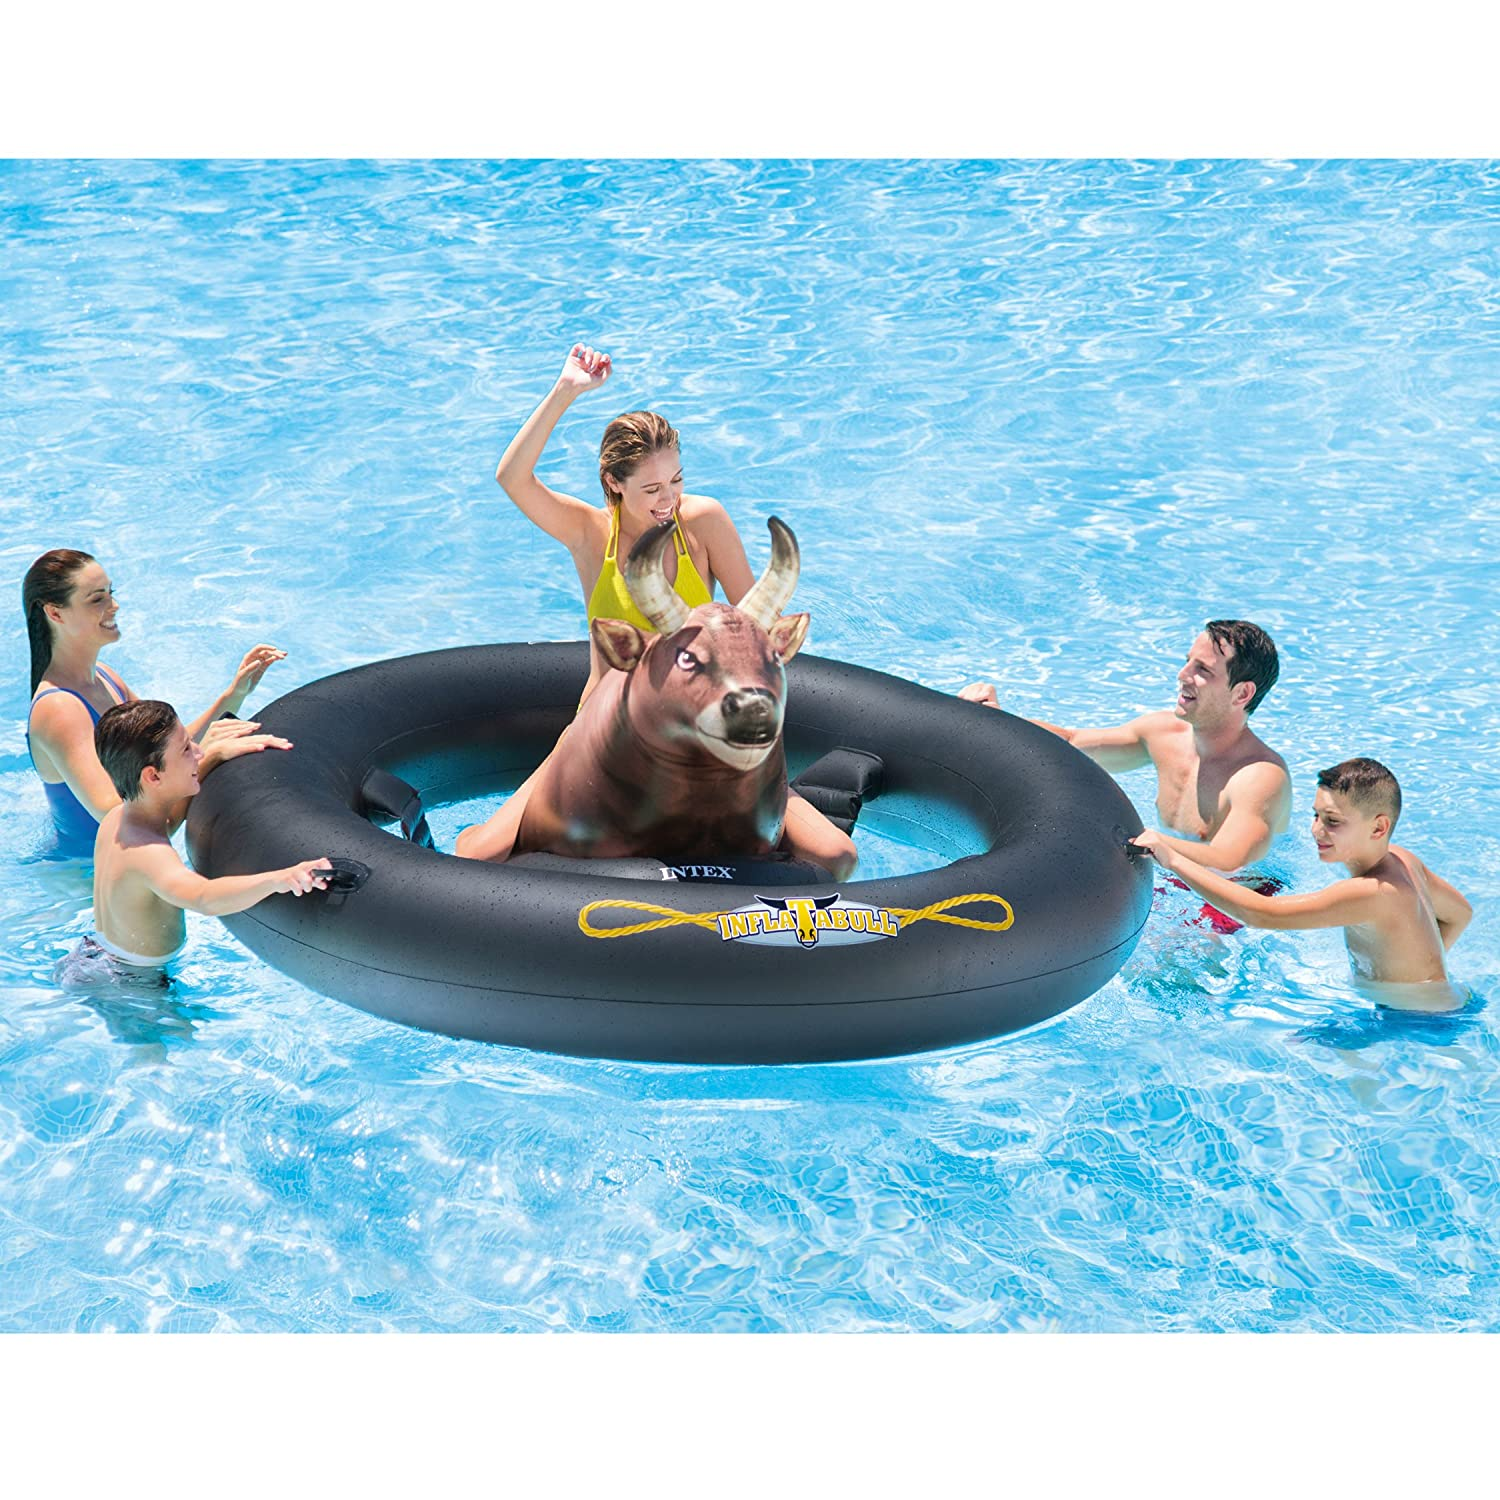 Inflat-A-Bull, Inflatable Pool Toy,